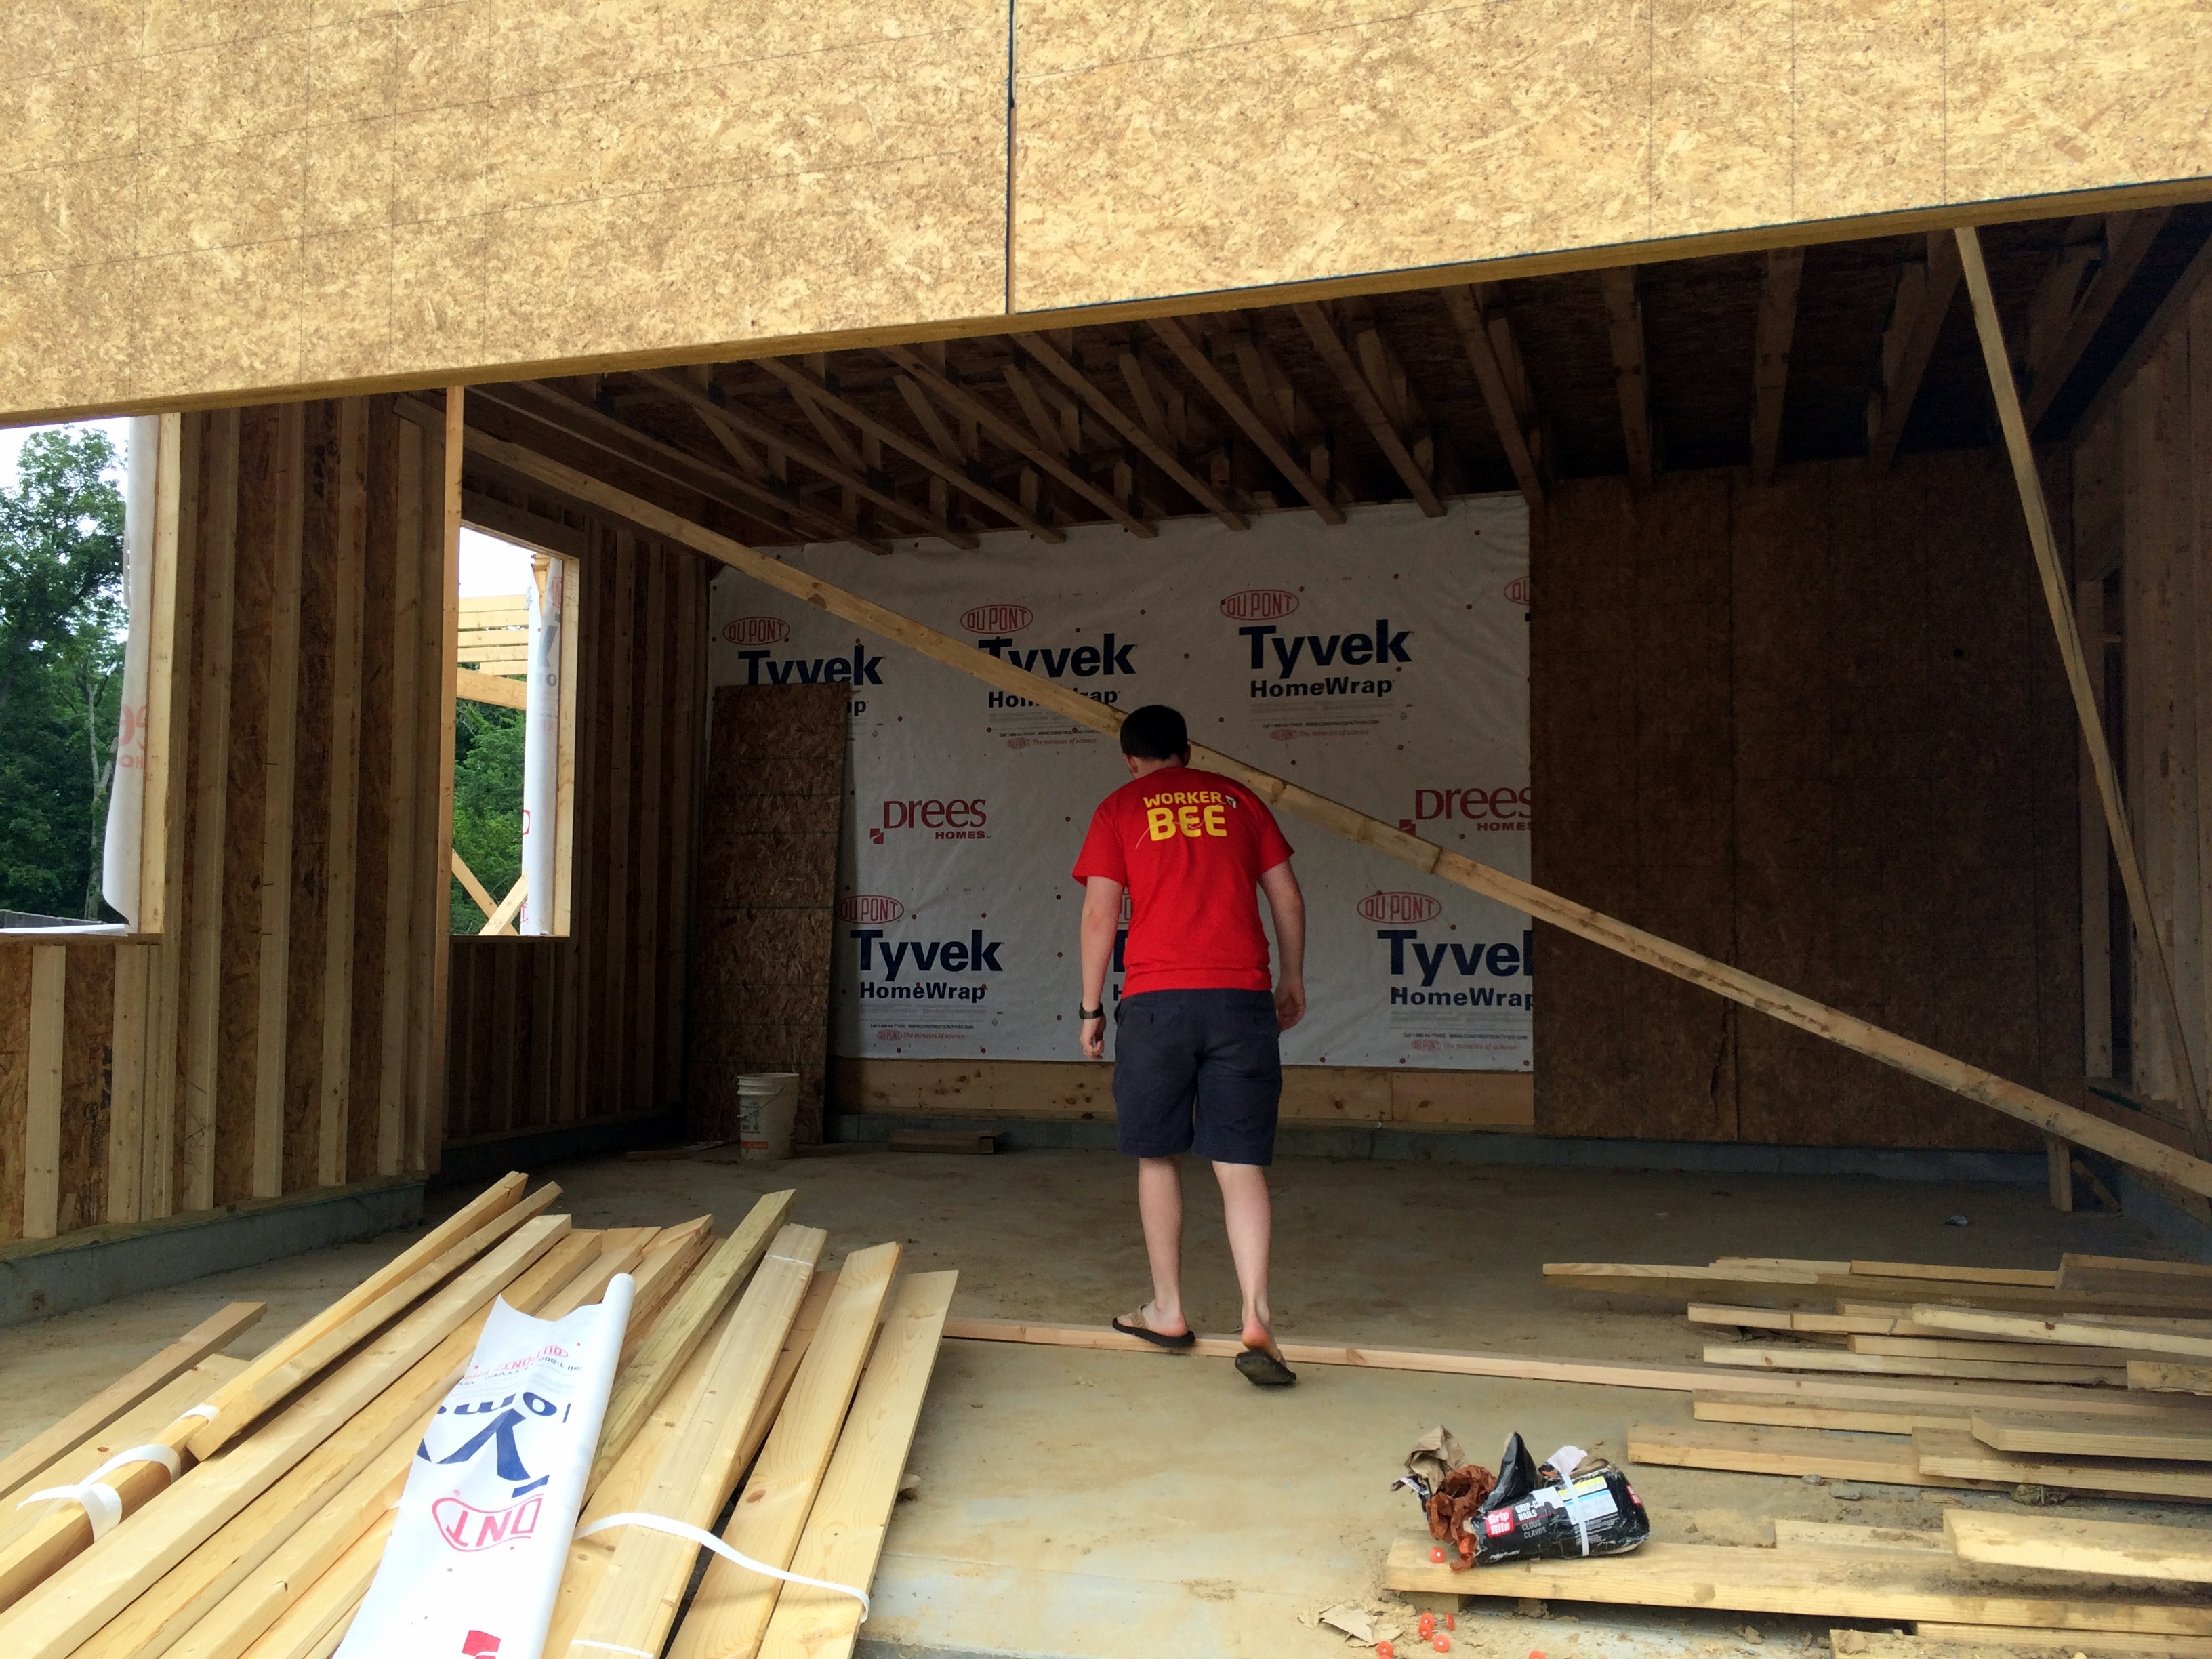 drees-homes-framing-garage